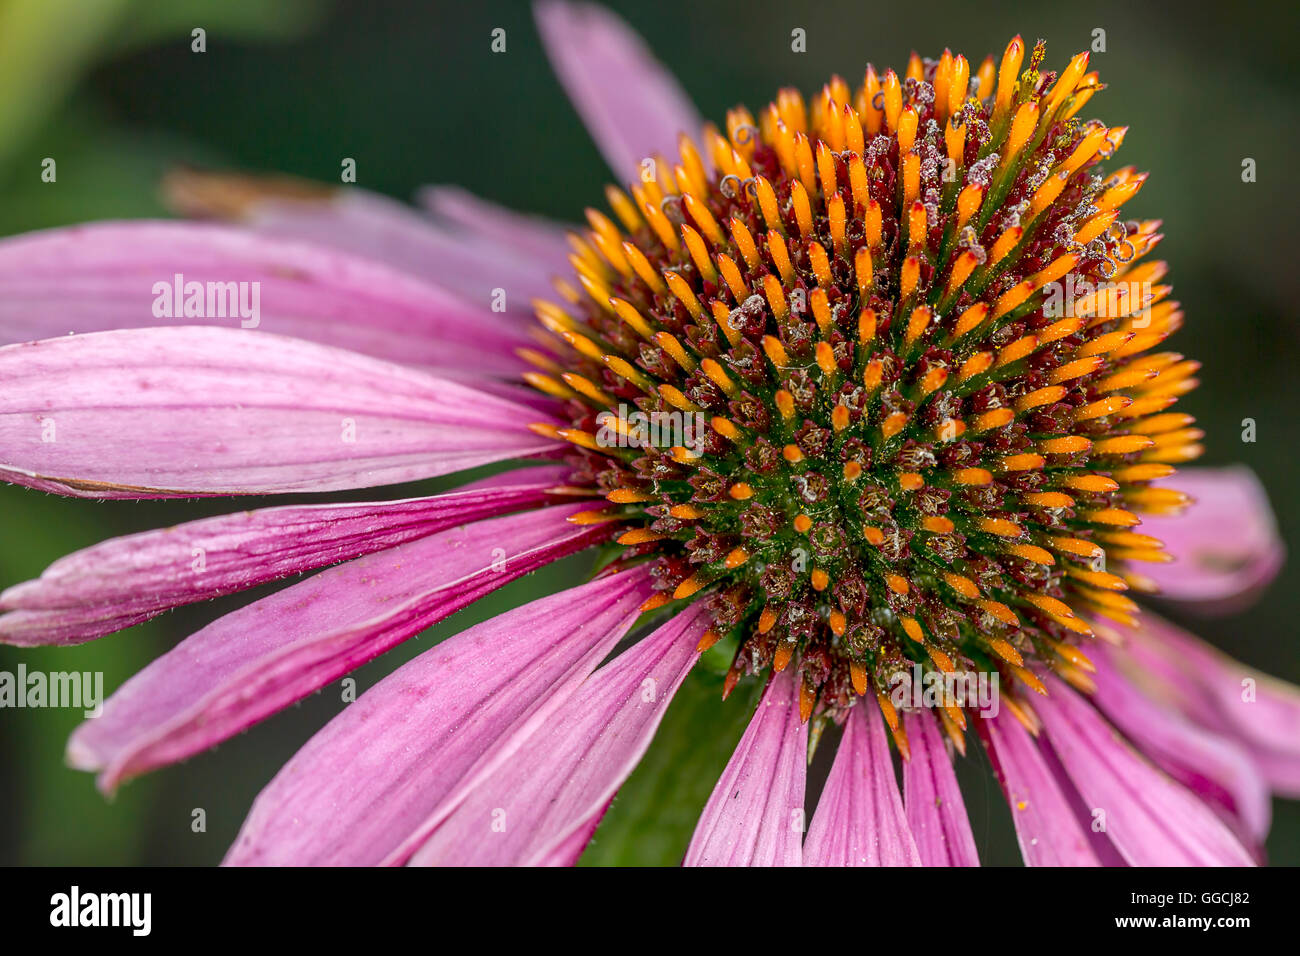 Detailed view of cone flower. - Stock Image